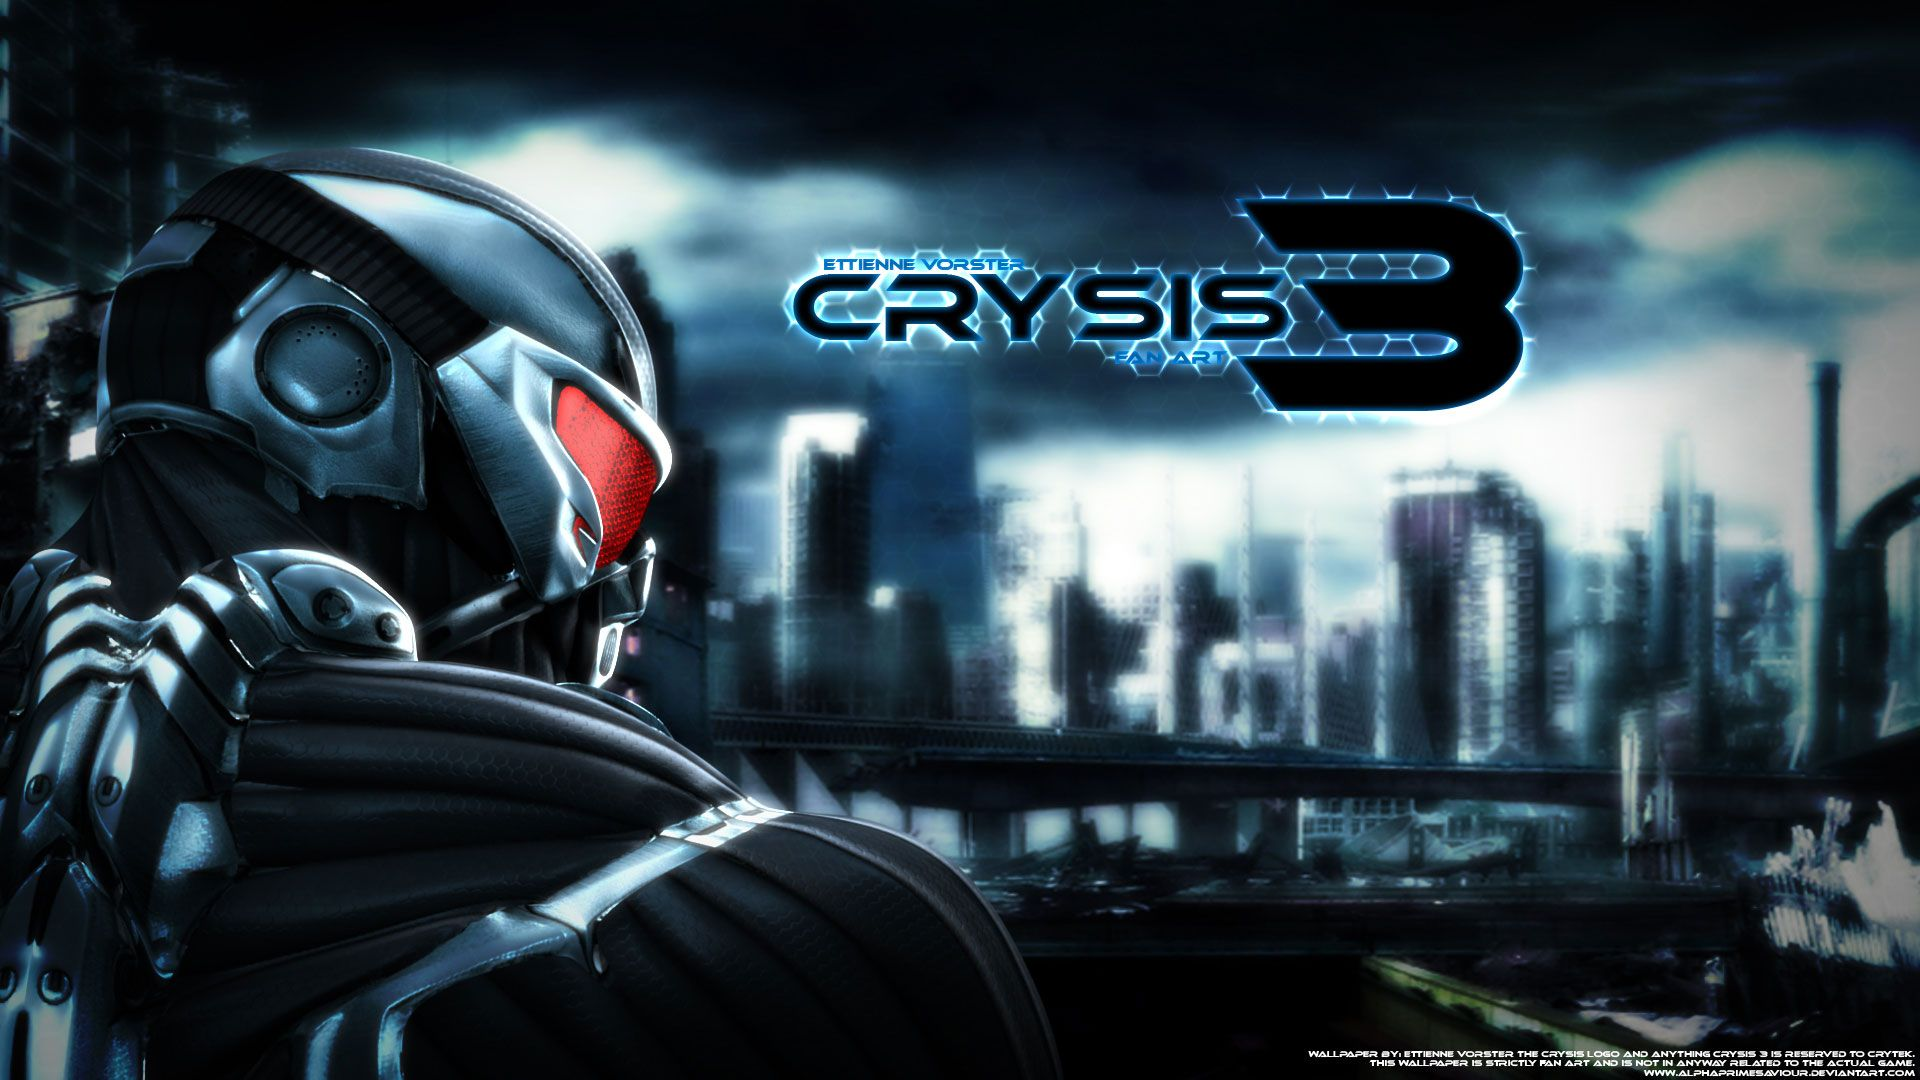 crysis 3 exclusive hd game wallpapers for desktop | game hd